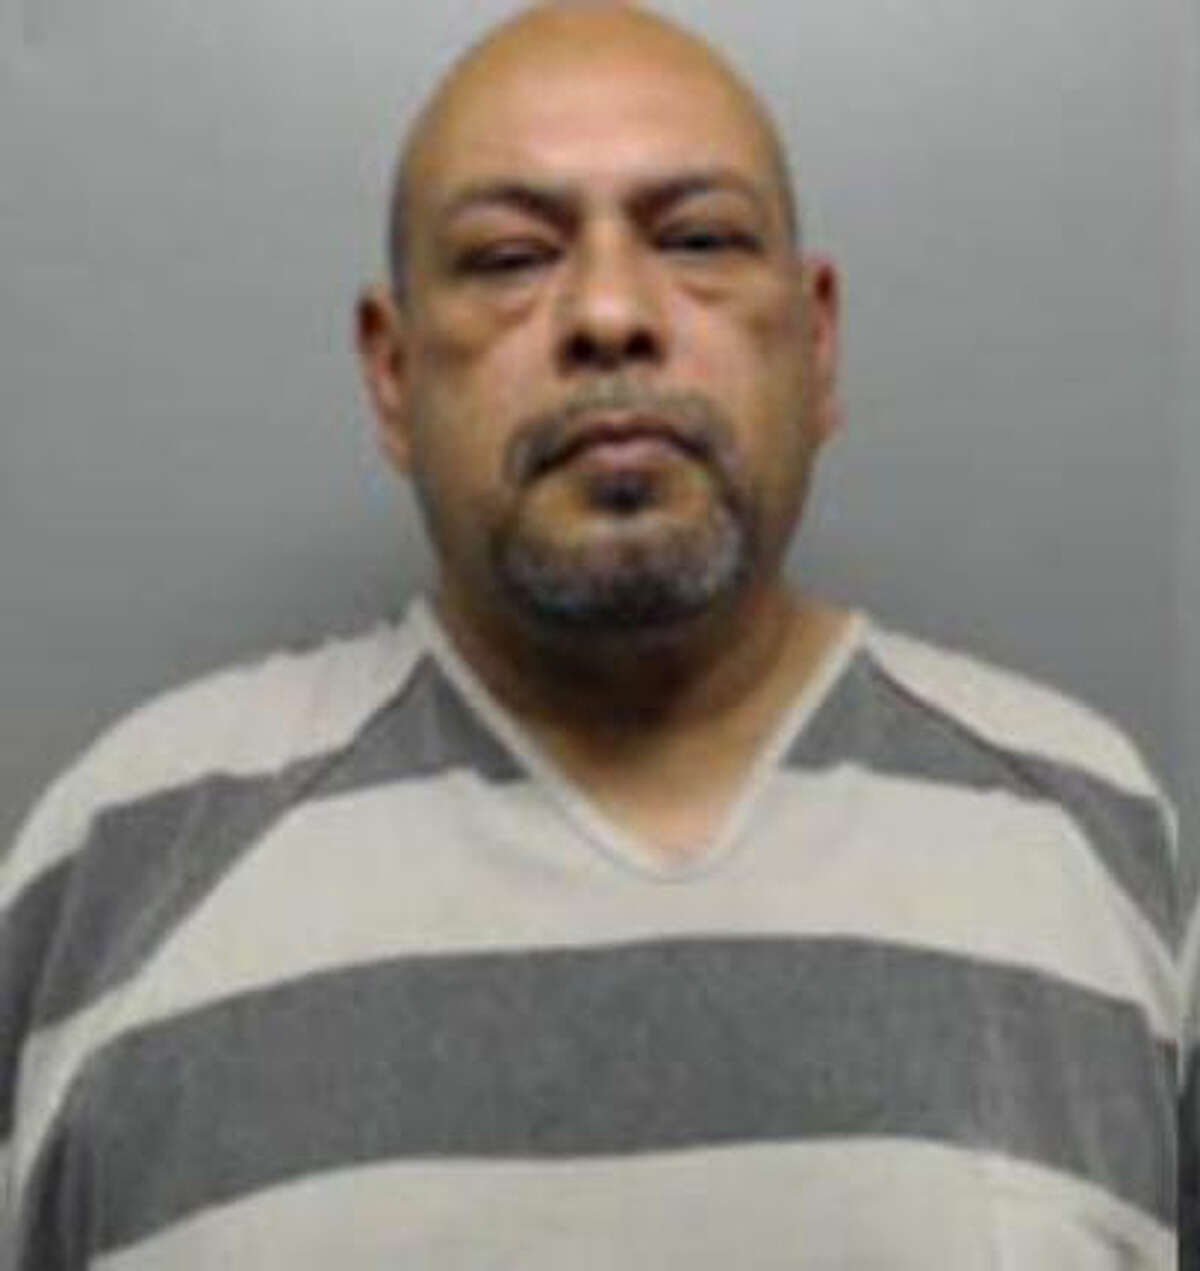 Lt. Fernando Garcia is pictured. Keep clicking through the gallery to see mugshots from Webb County's Operation GOTCHA, as well as photos of police officers in trouble with the law.